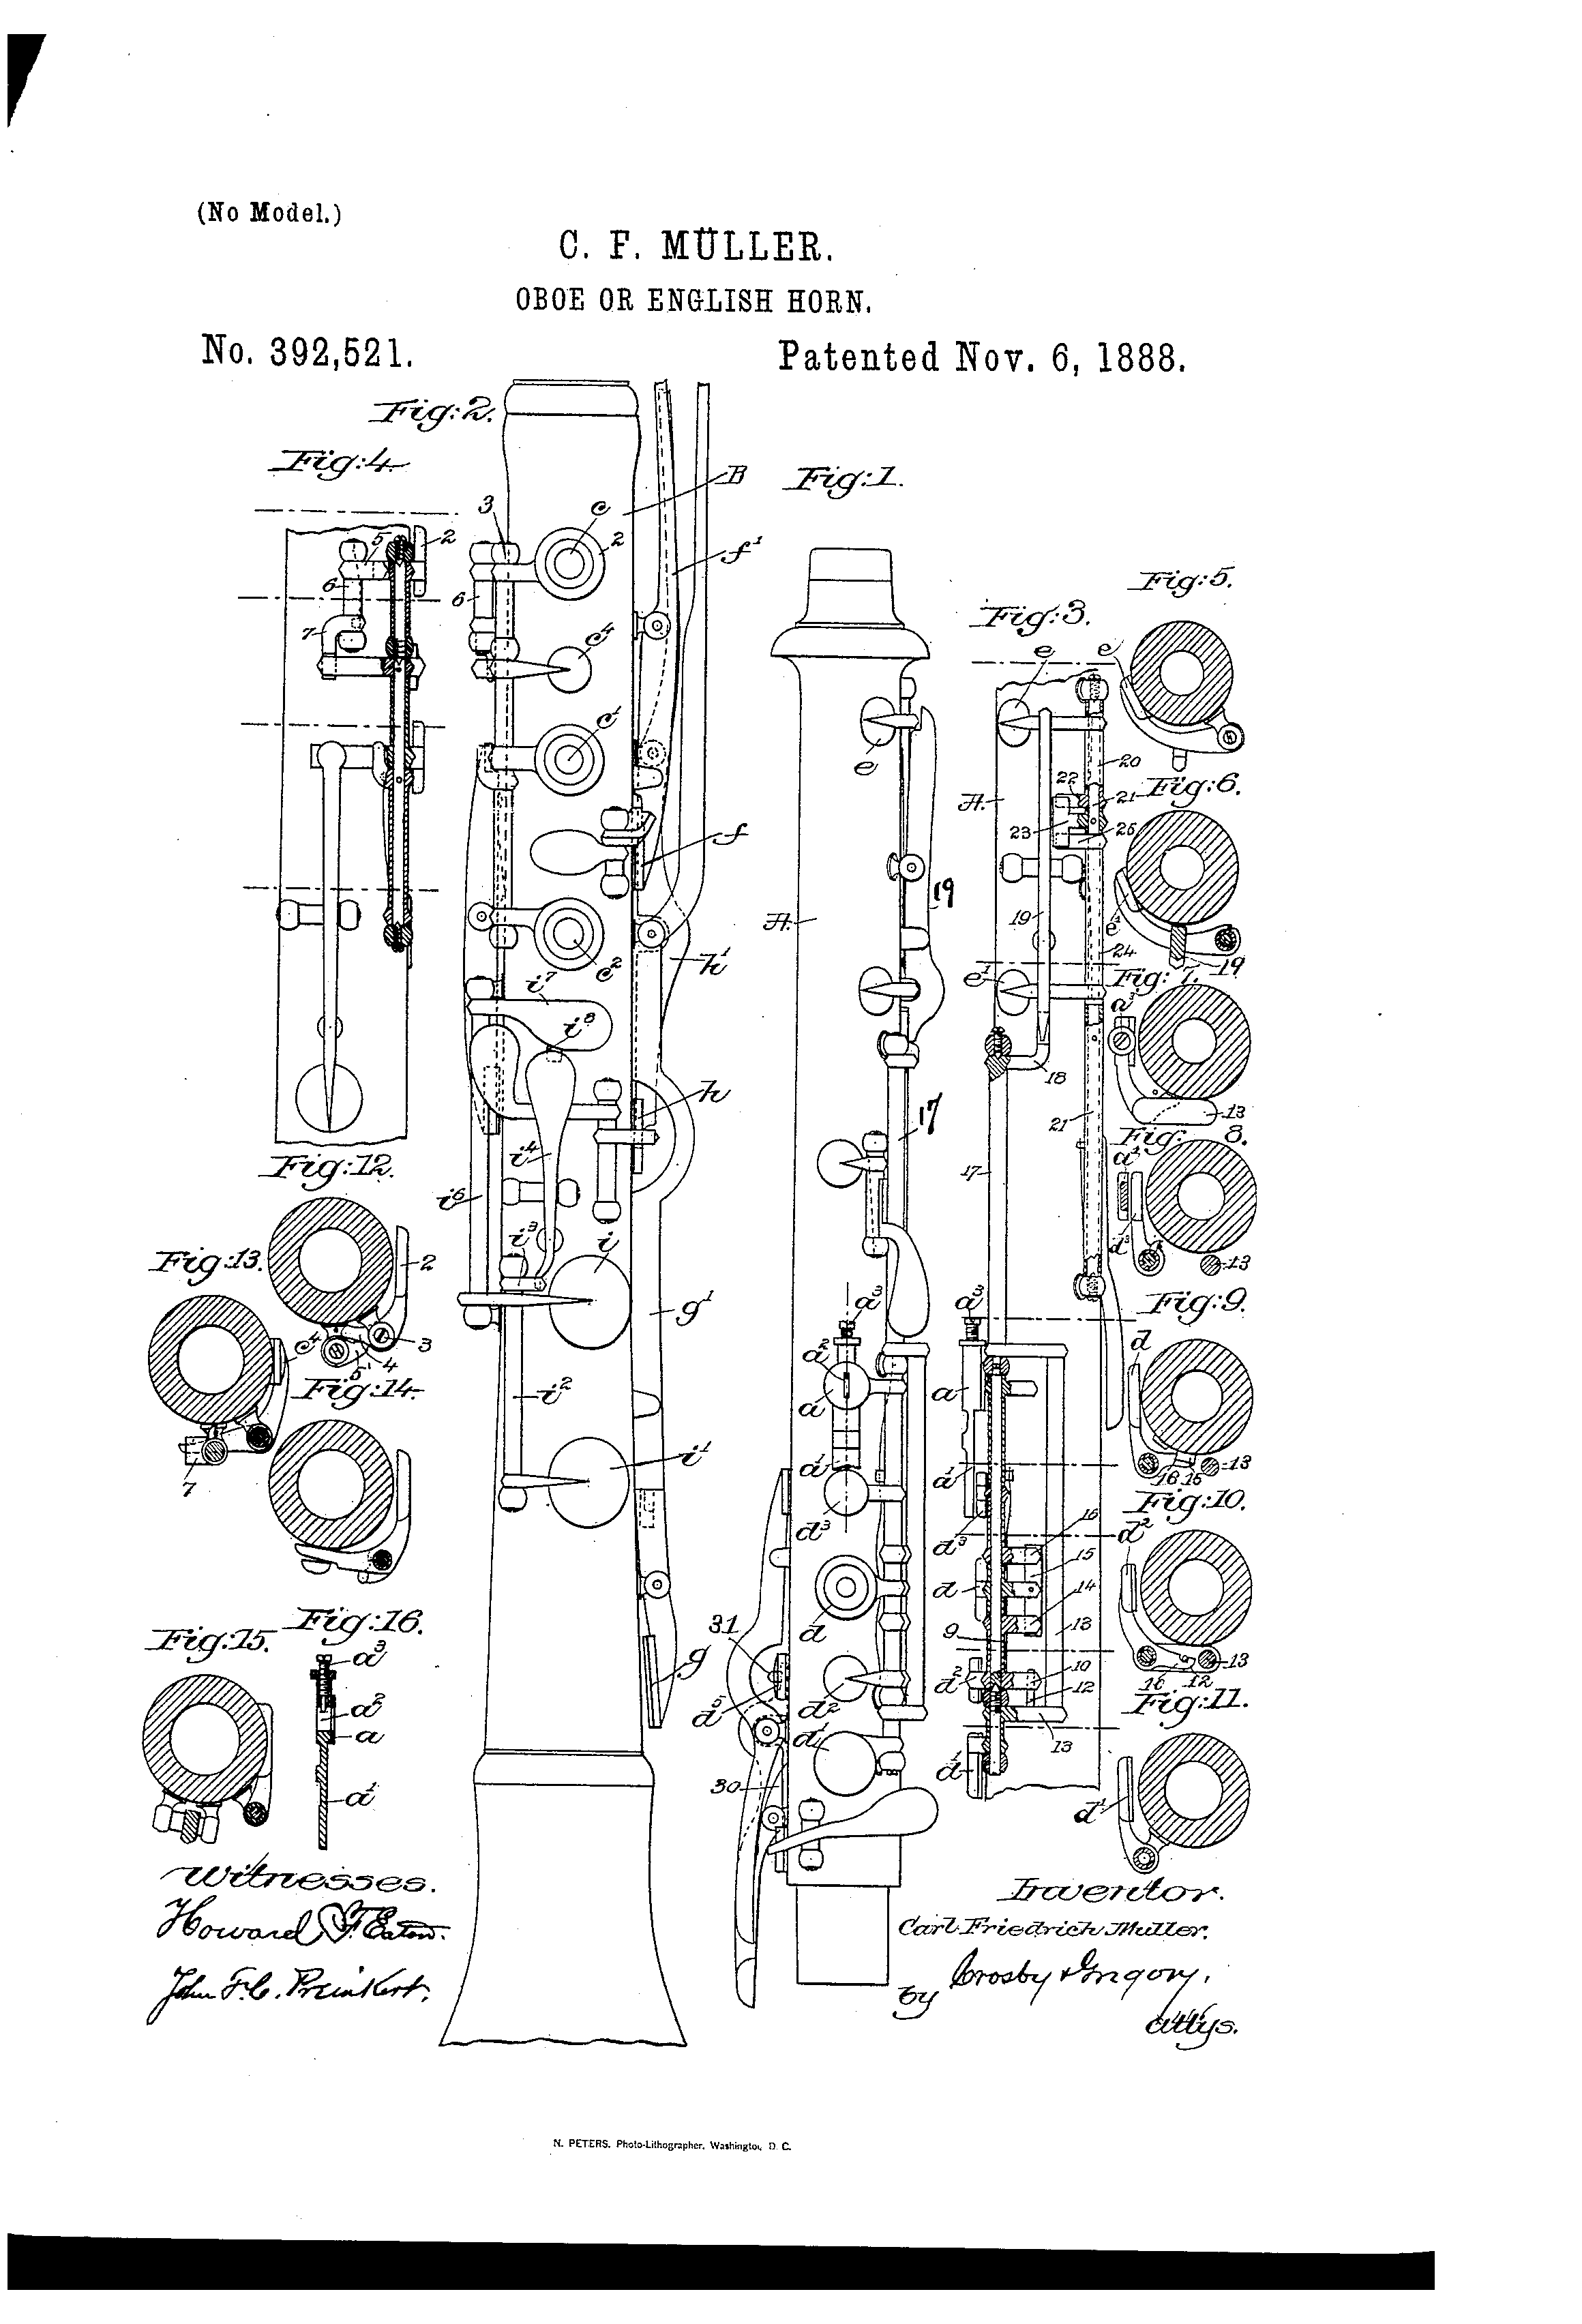 hight resolution of patent us392521 oboe or english horn google patents english horn oboe musical